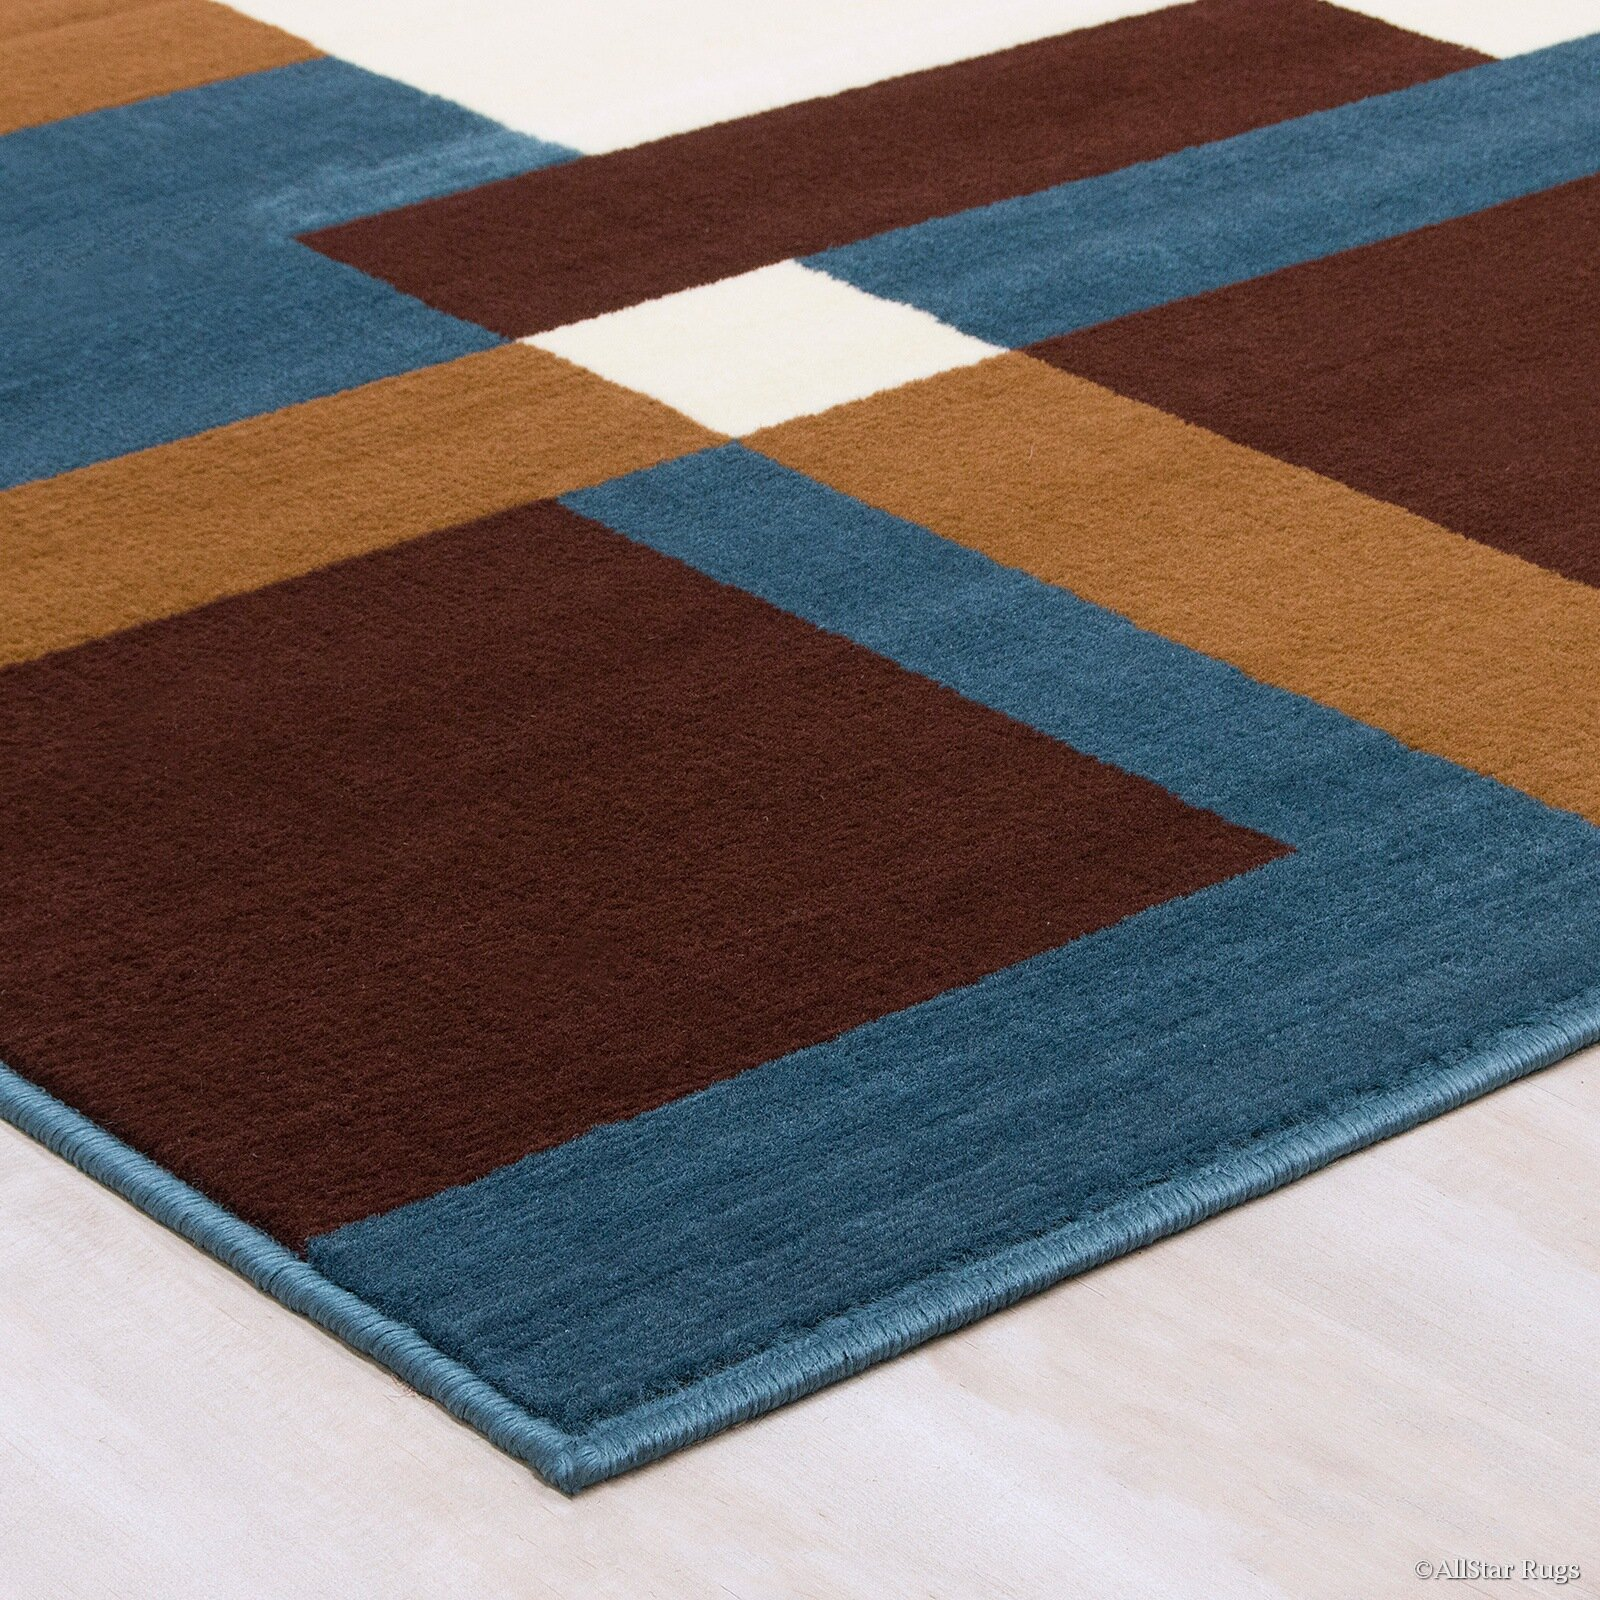 Allstar Rugs Hand Woven Blue Brown Area Rug Wayfair